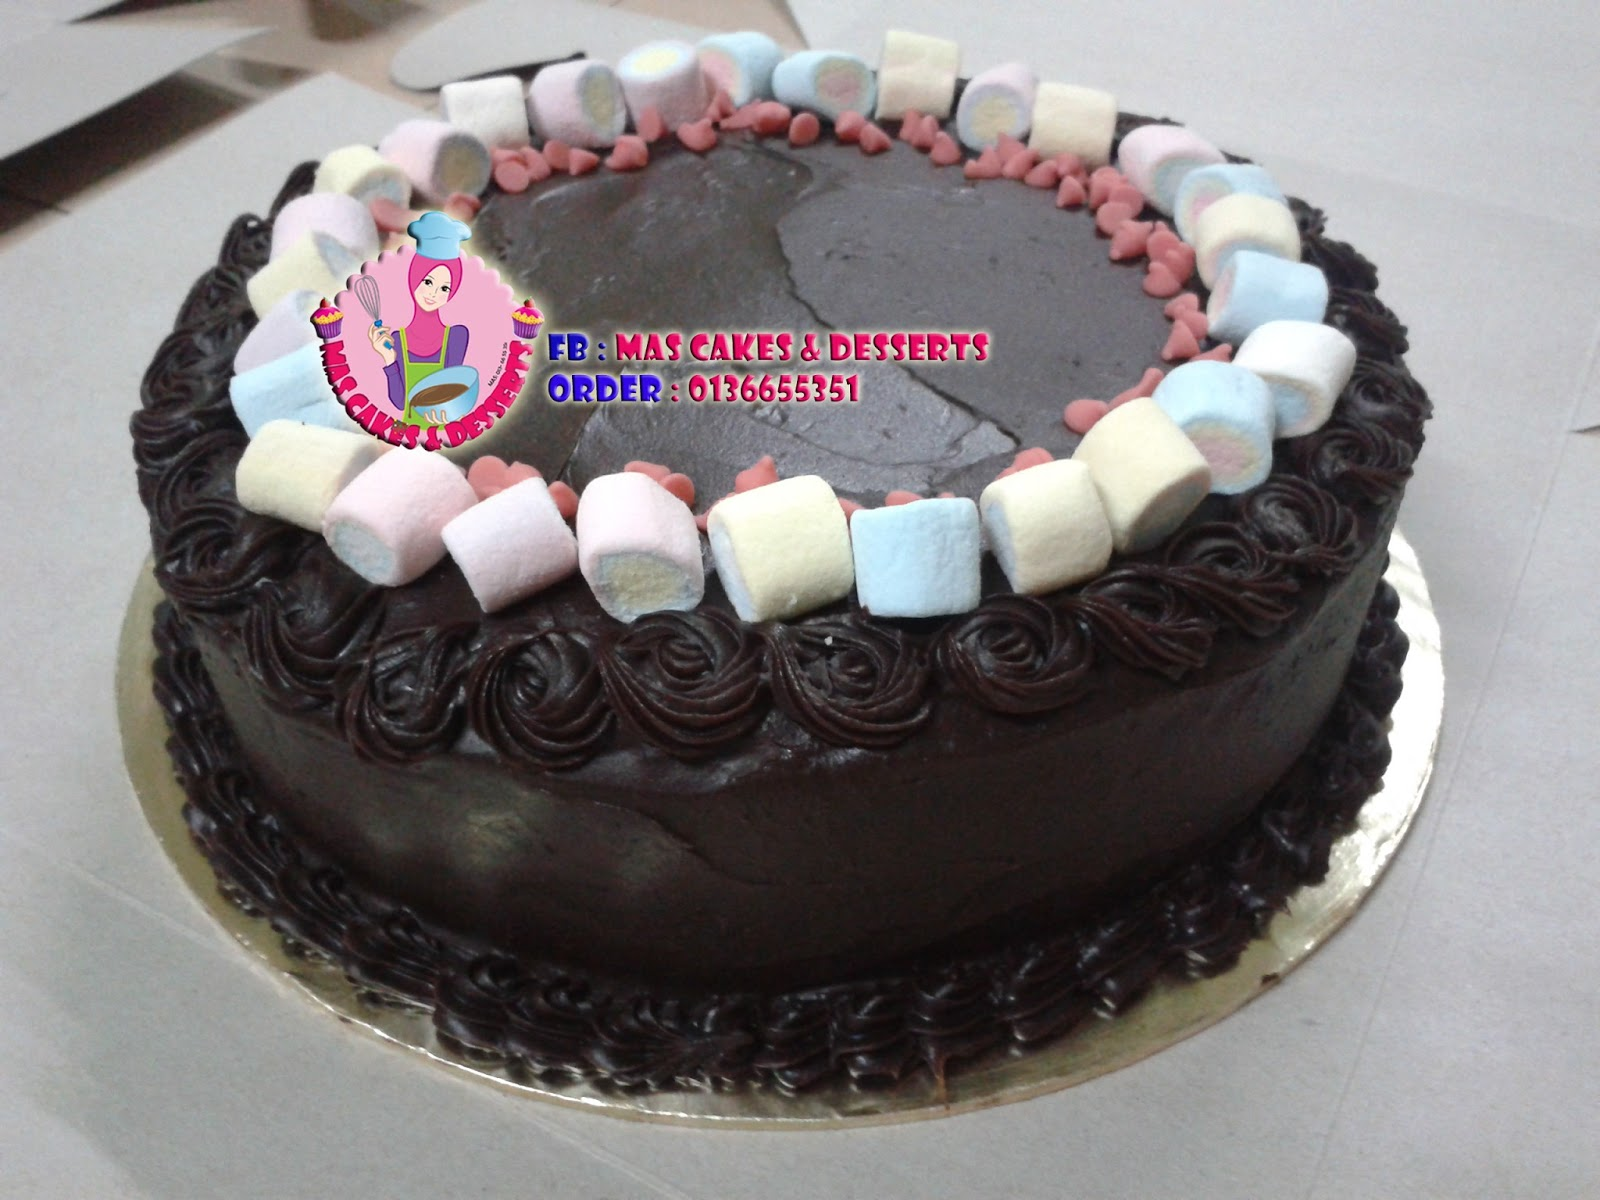 Mas Cakes & Desserts: Moist Rich Chocolate Cake